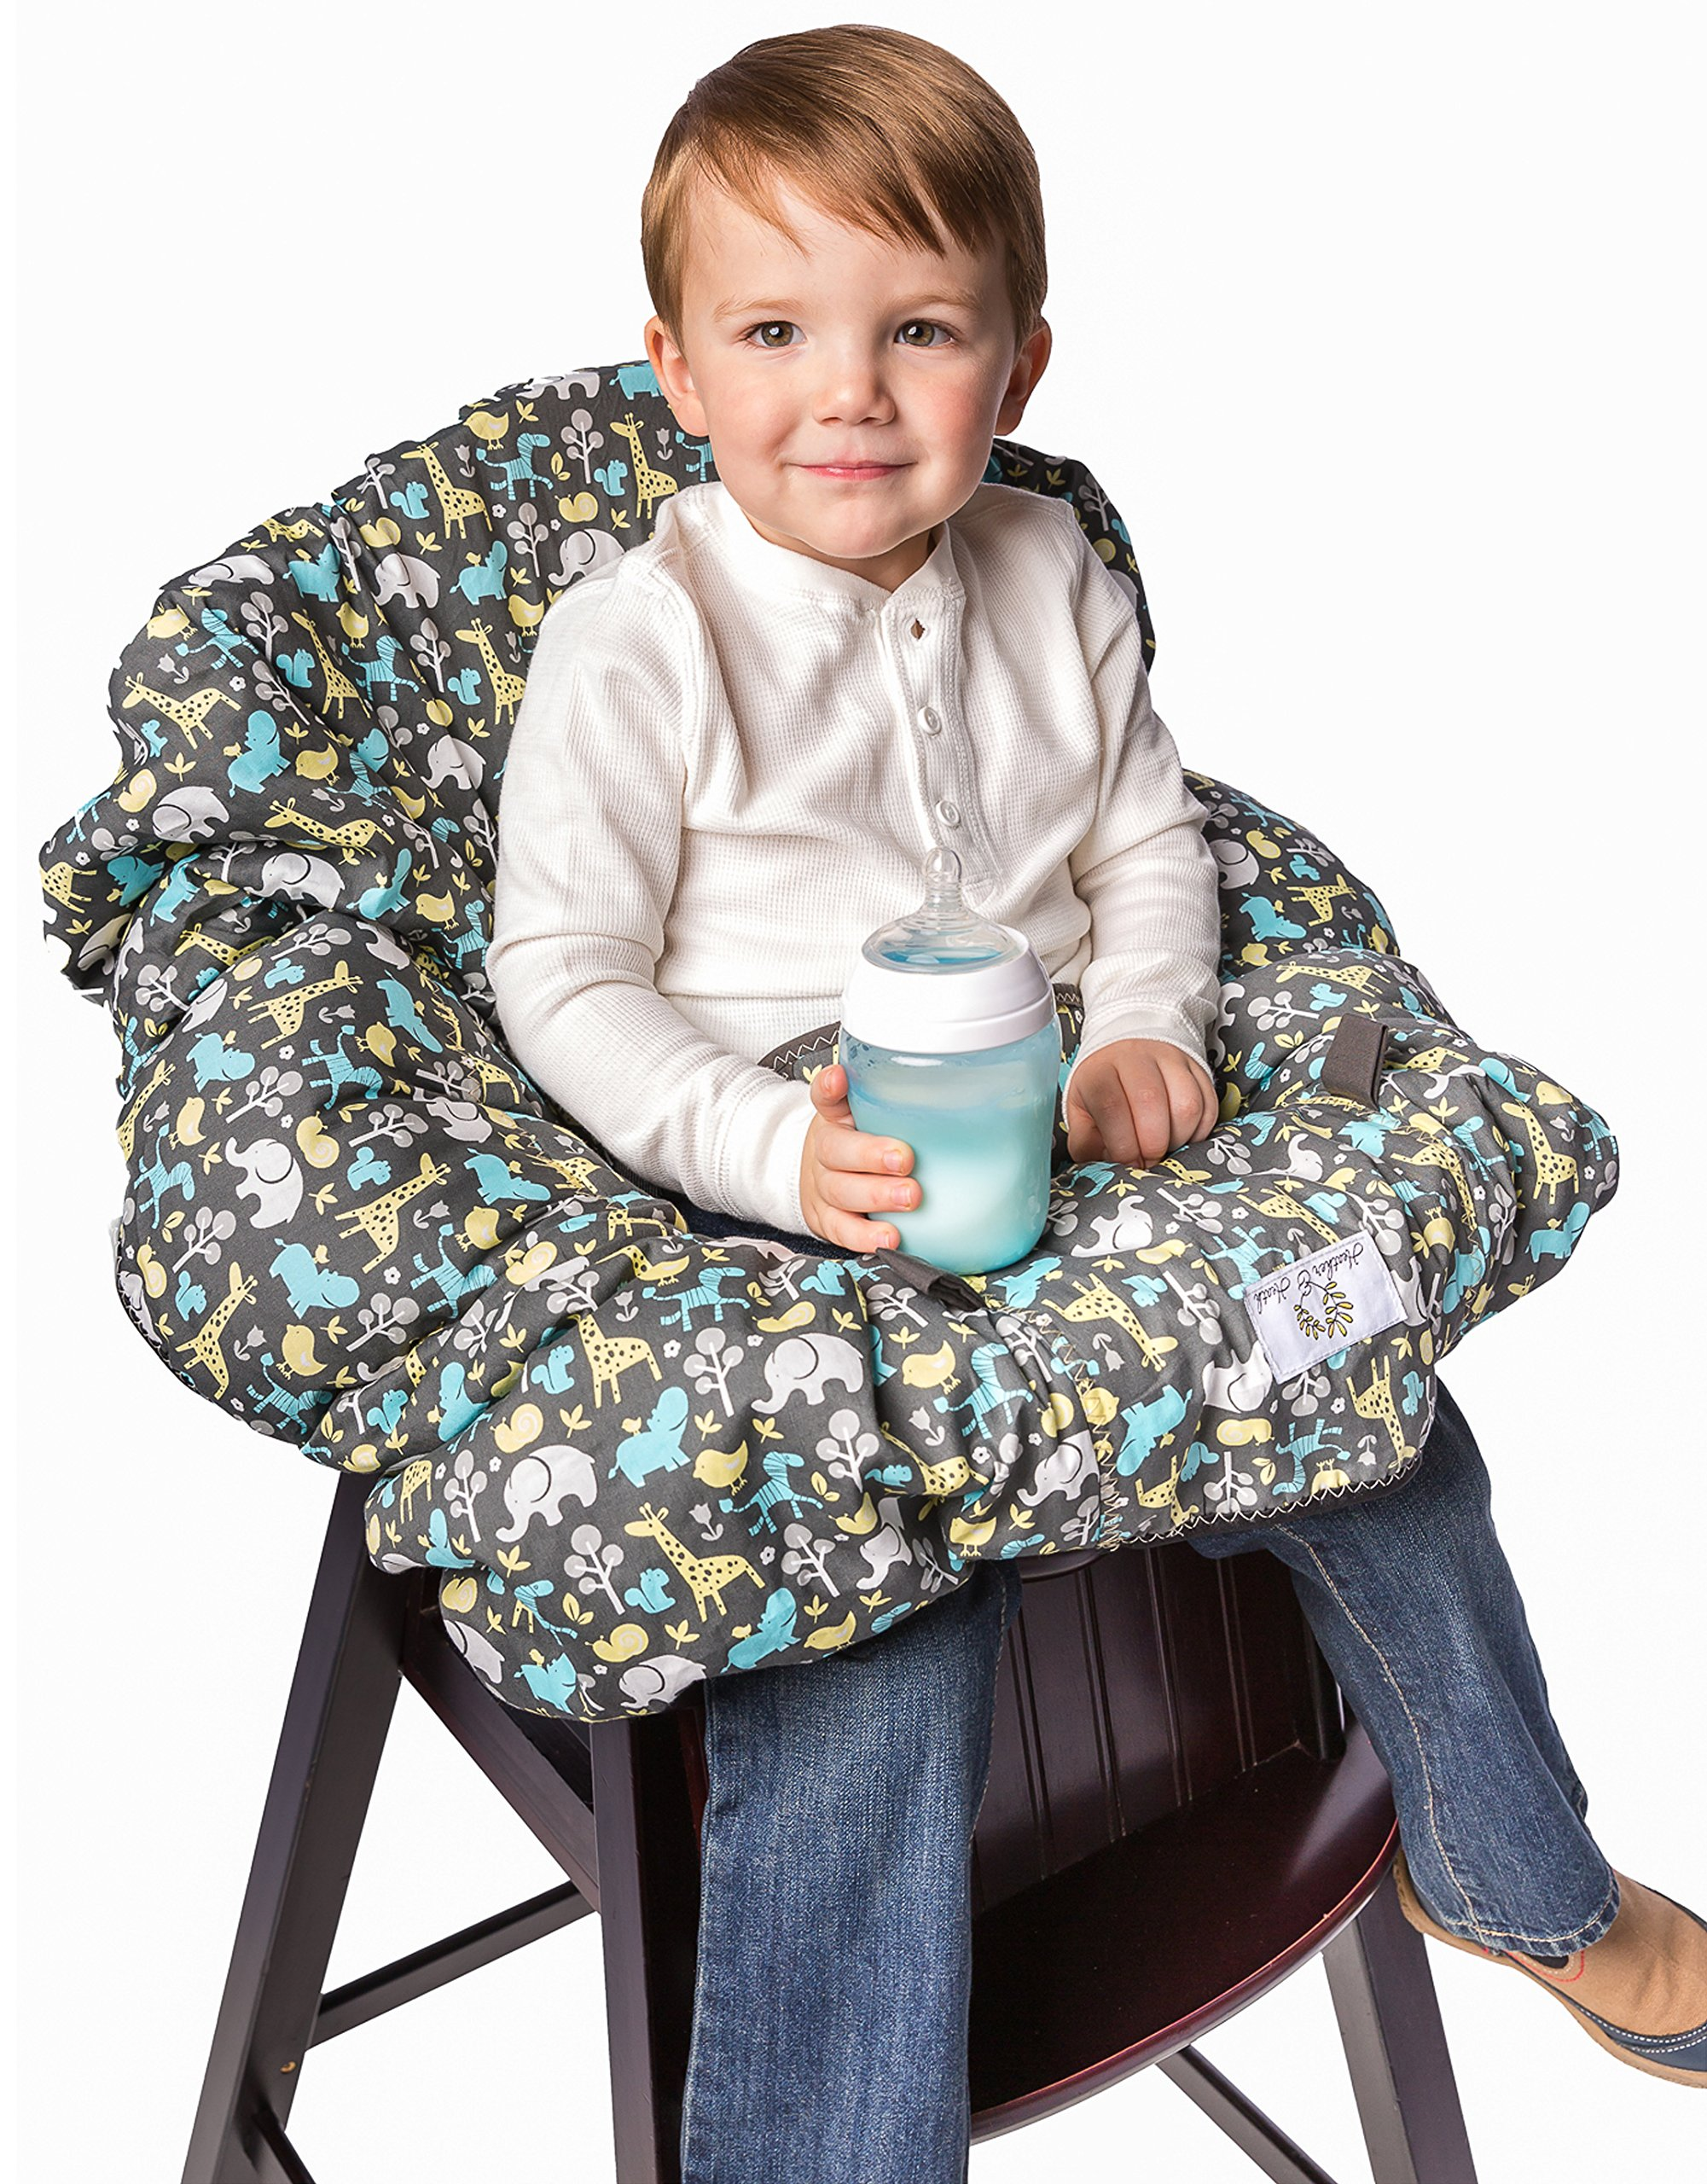 2-in-1 Shopping Cart Cover and High Chair Cover, Universal Fit, Ultra Plush, 100 Percent Cotton Upper, Full Safety Harness, Machine Washable for Baby, Toddler, Boy or Girl (Grey) by Heather and Heath Kids (Image #7)